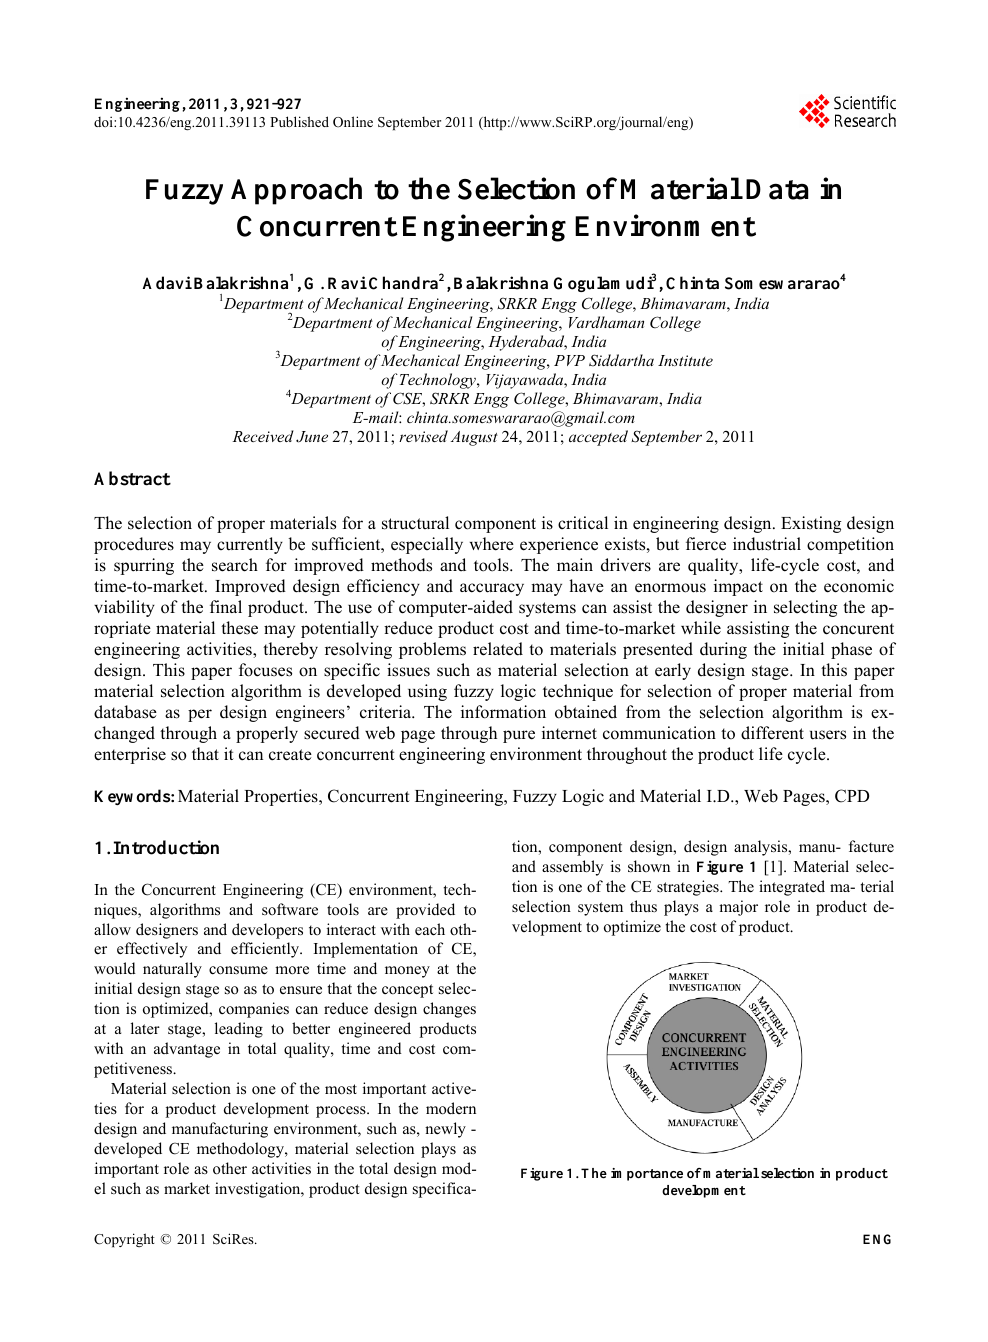 Fuzzy Approach To The Selection Of Material Data In Concurrent Engineering Environment Topic Of Research Paper In Materials Engineering Download Scholarly Article Pdf And Read For Free On Cyberleninka Open Science